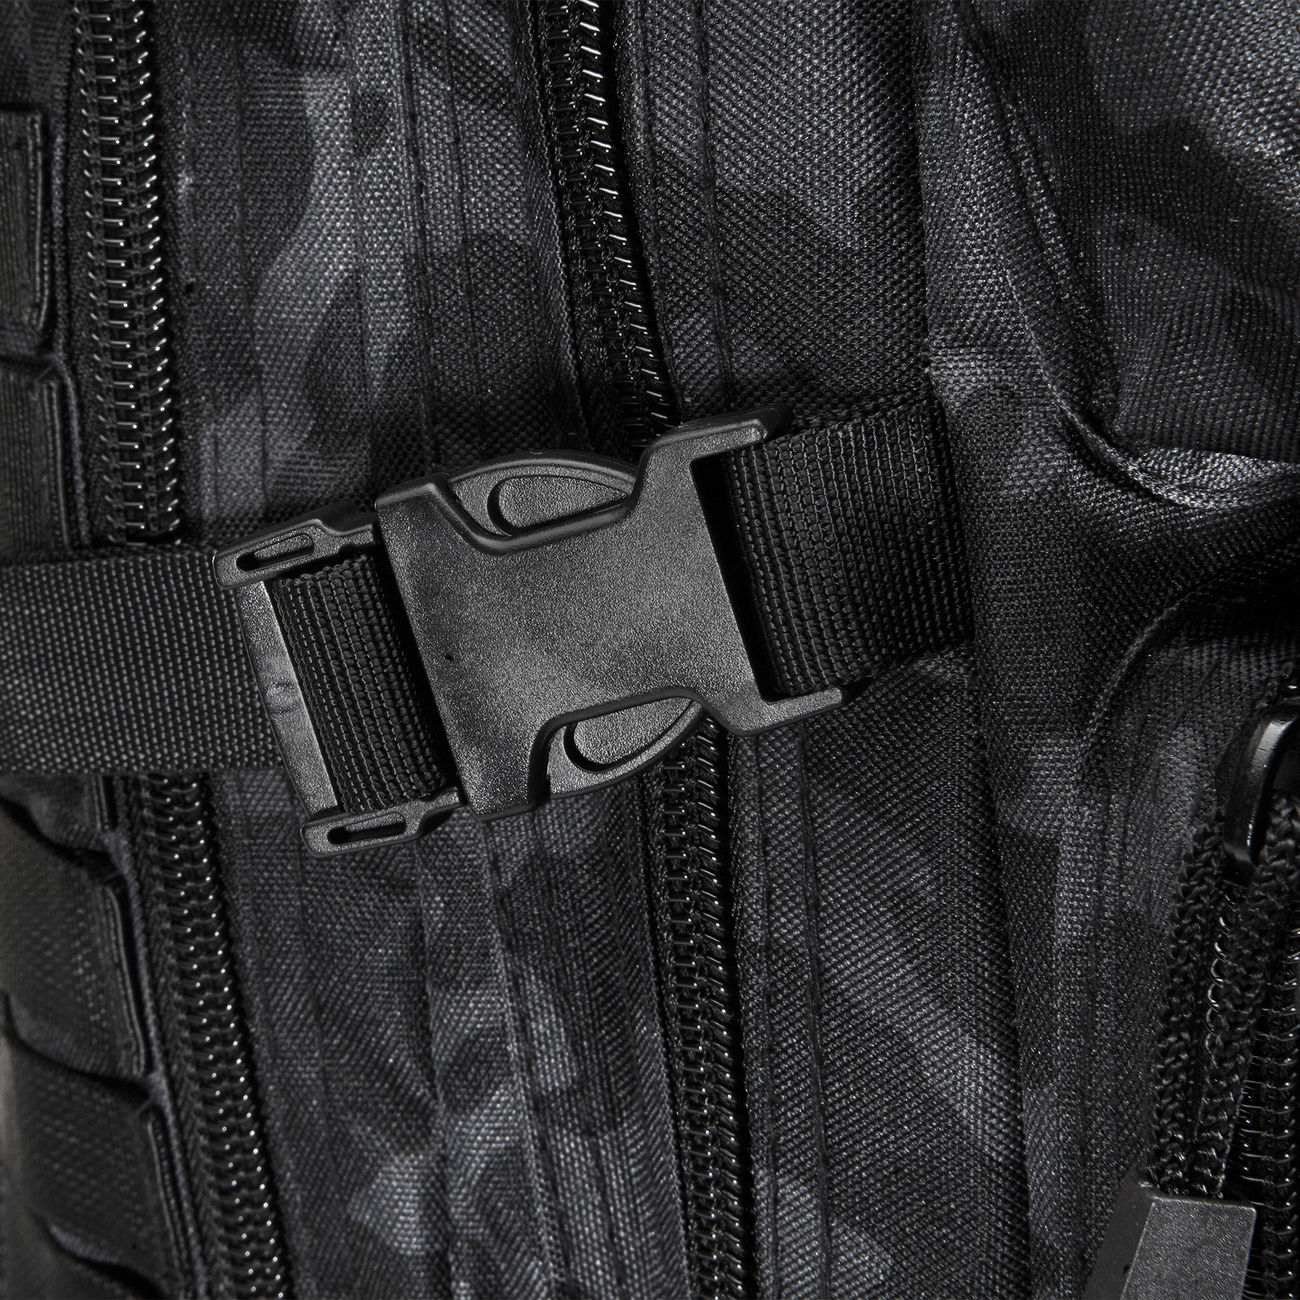 MFH US Rucksack Assault I night camo 4